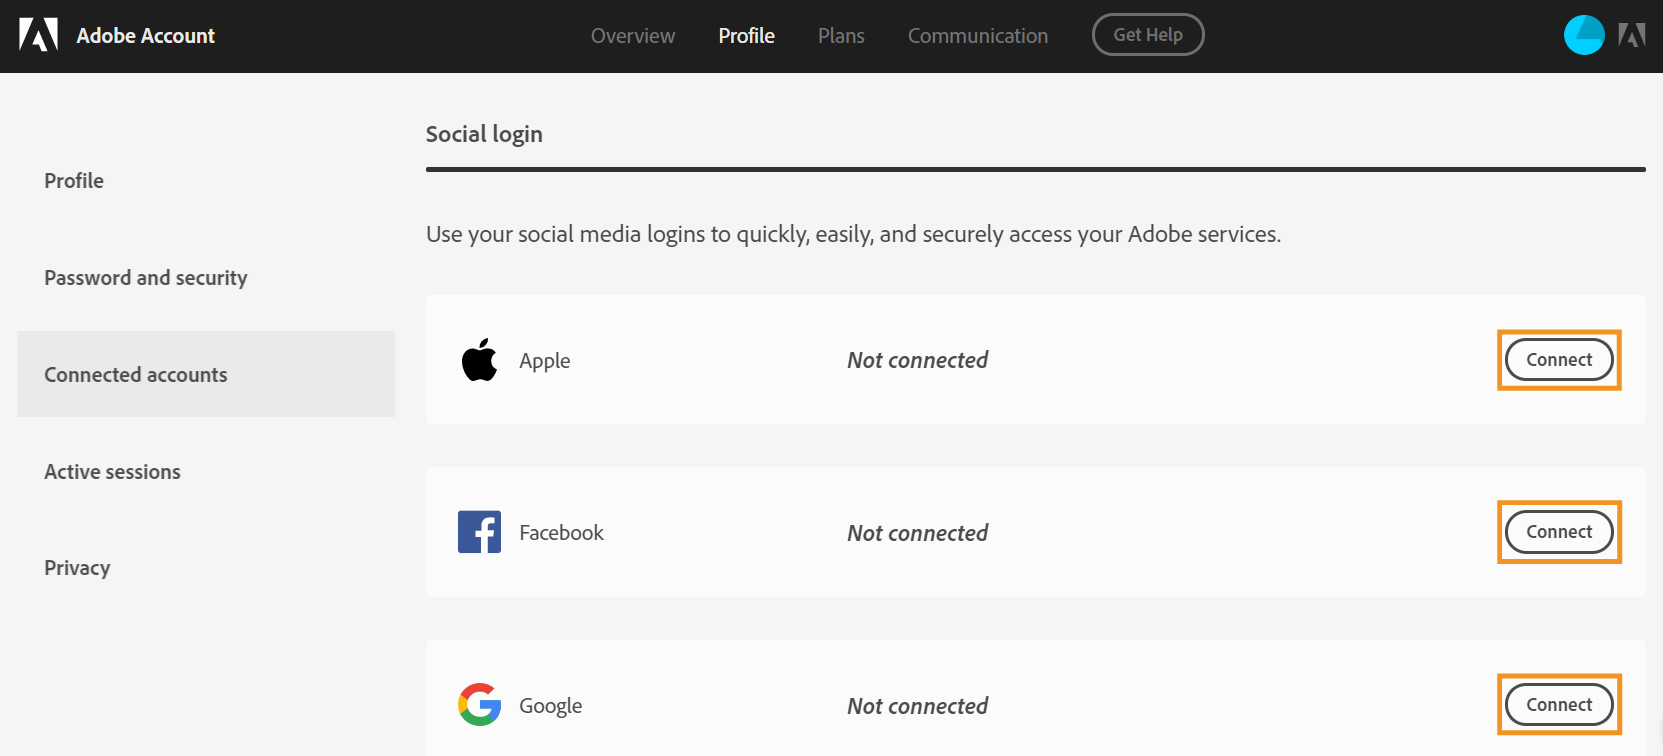 Connect social accounts to Adobe account